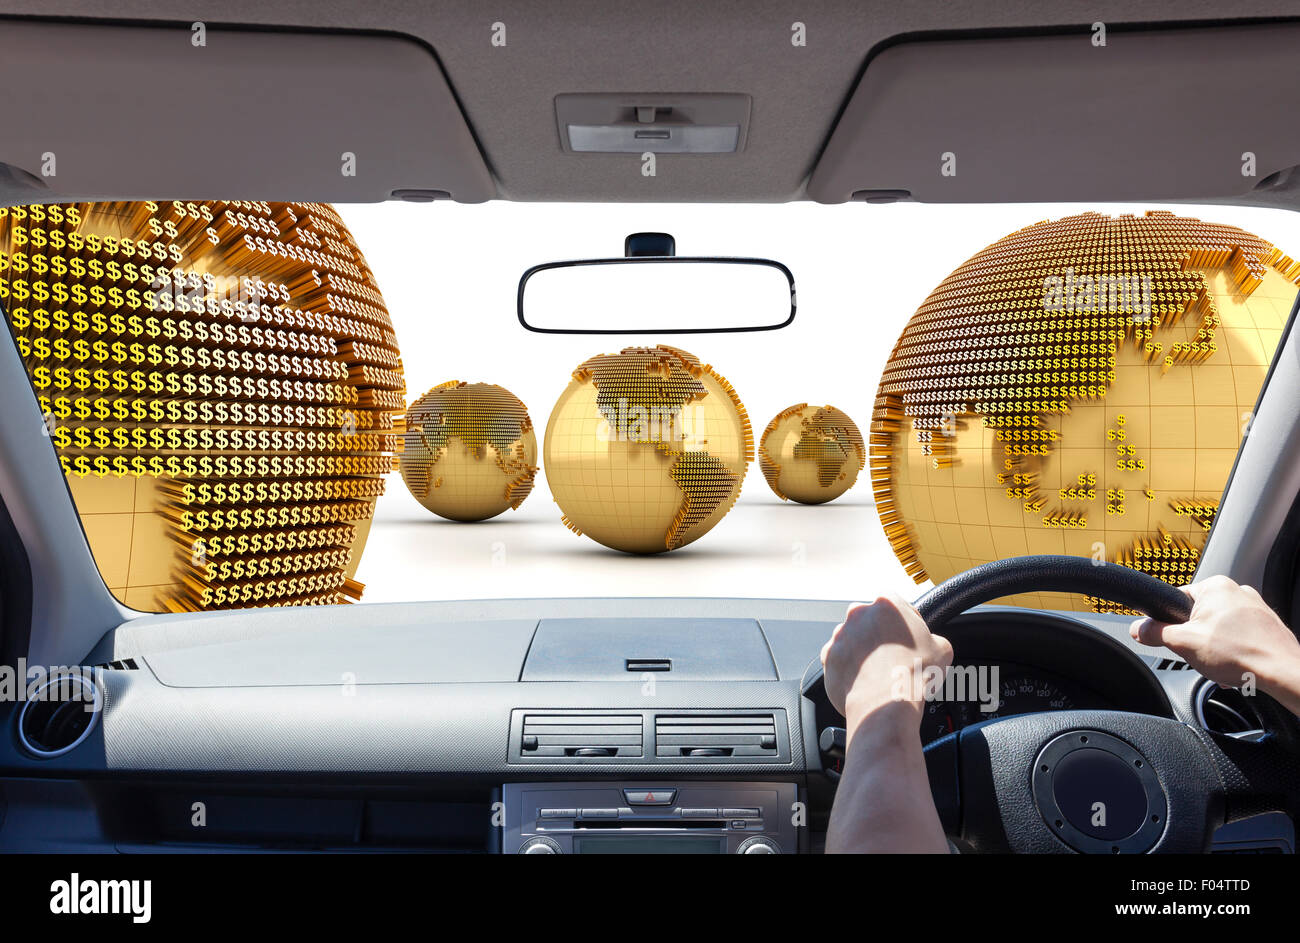 Driving in the money world - Stock Image